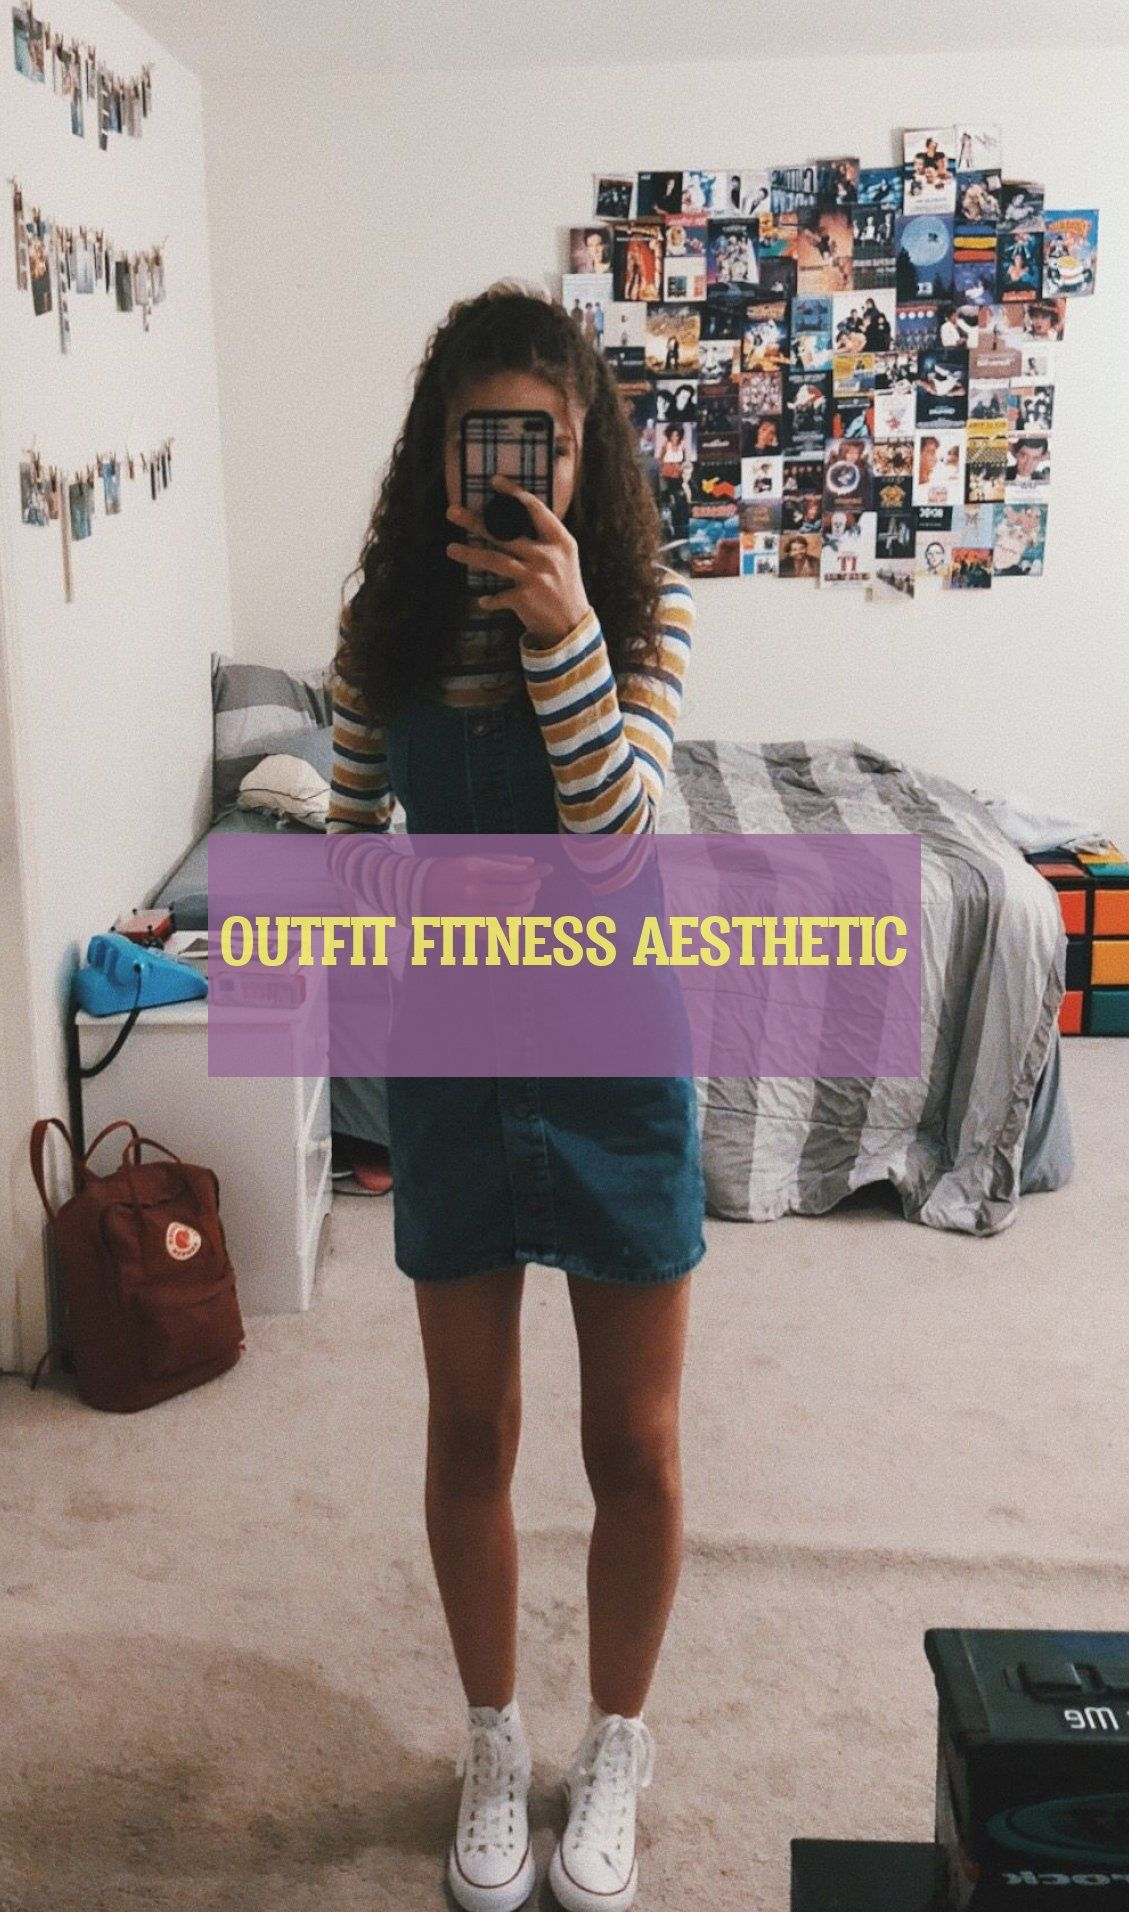 Outfit Fitness aesthetic #Outfit #Fitness #aesthetic